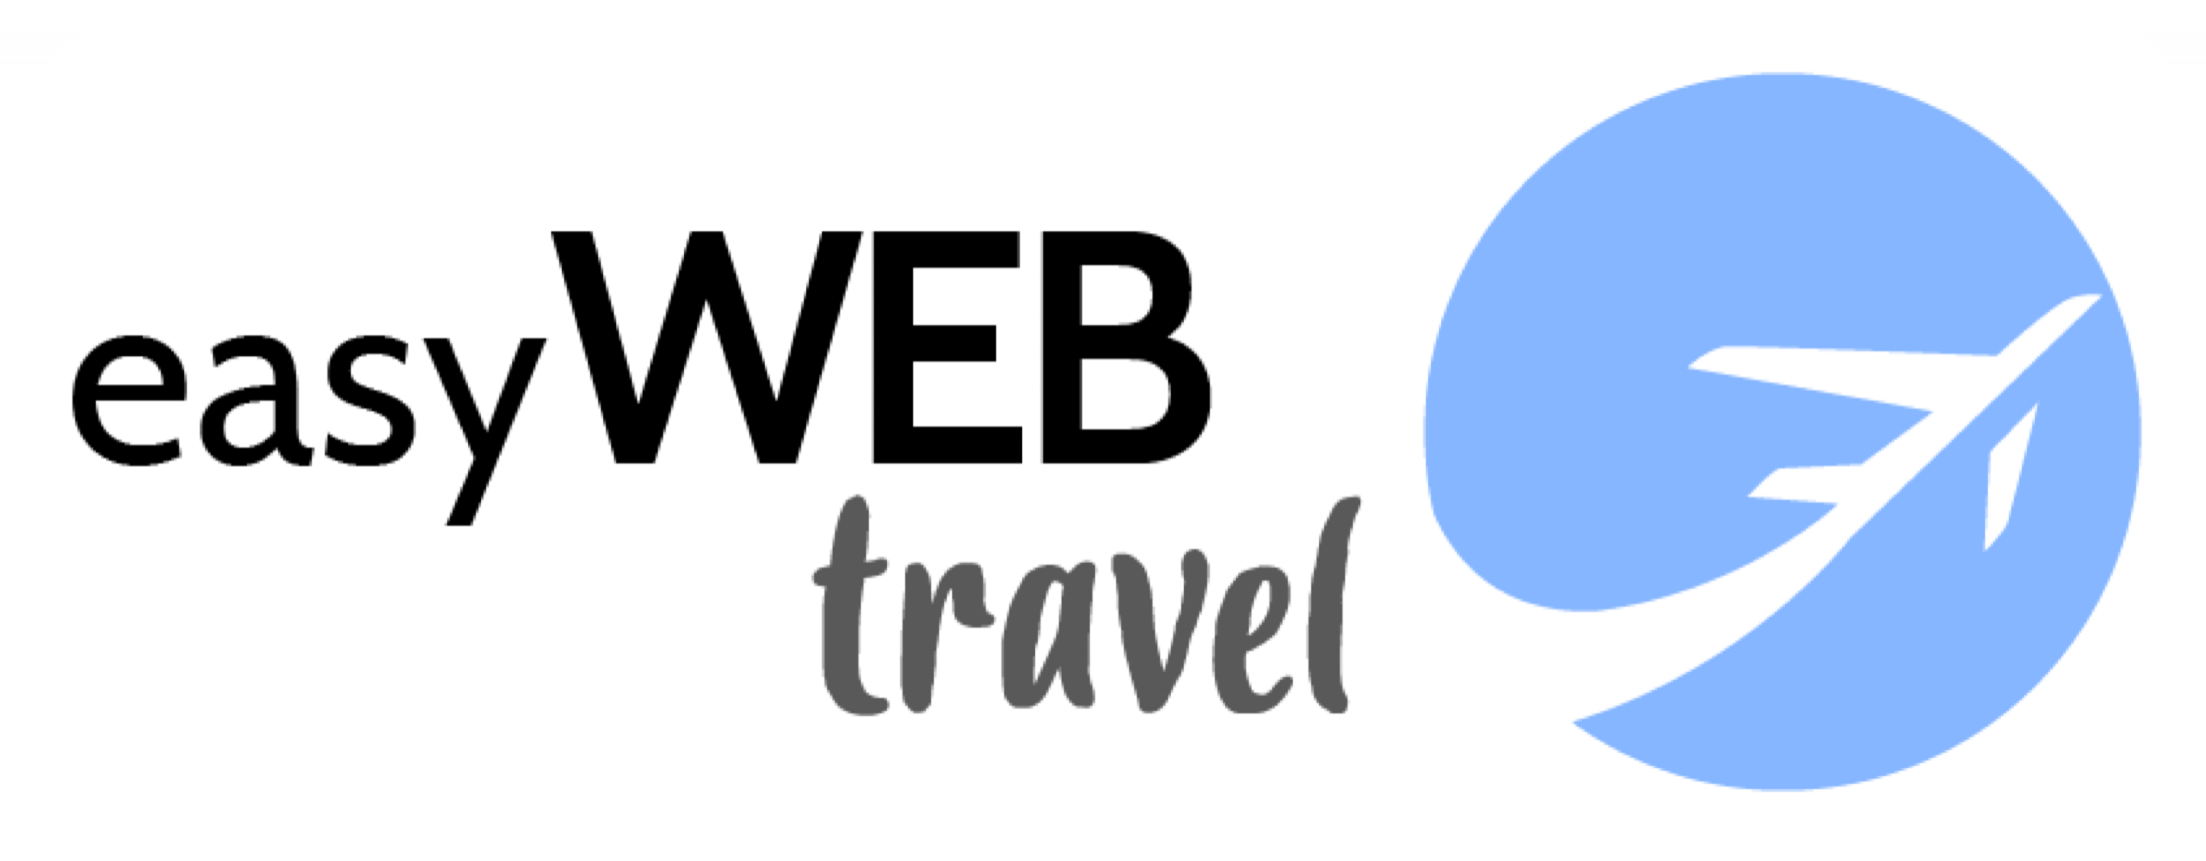 easy Web travel logo